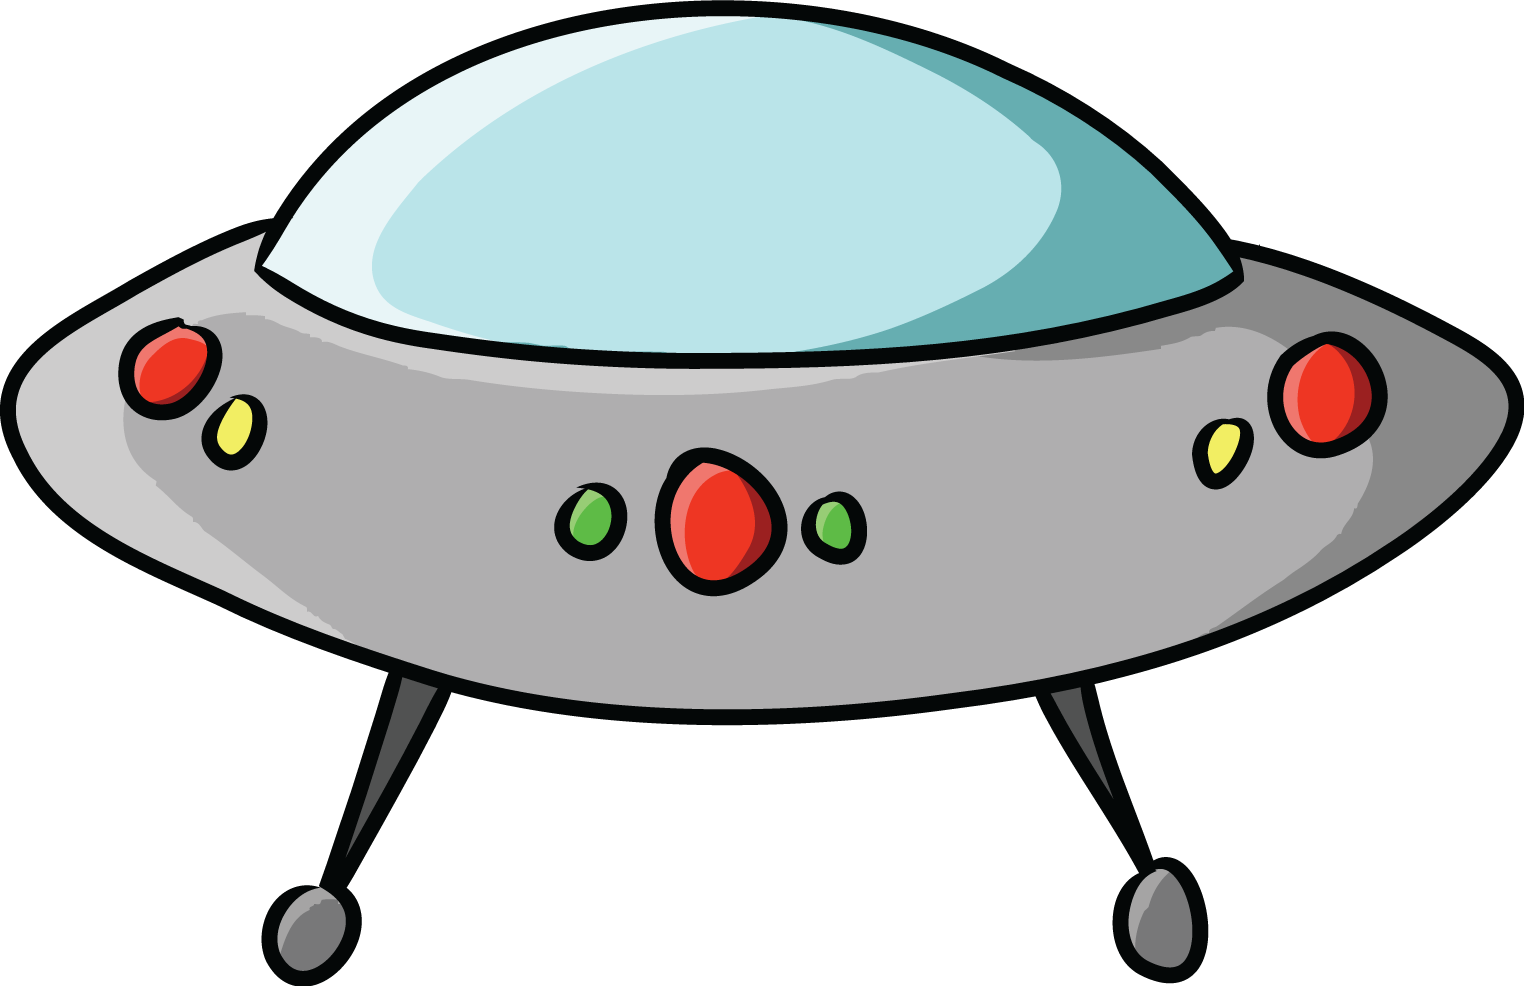 Free Cartoon UFO Clip Art-Free Cartoon UFO Clip Art-6